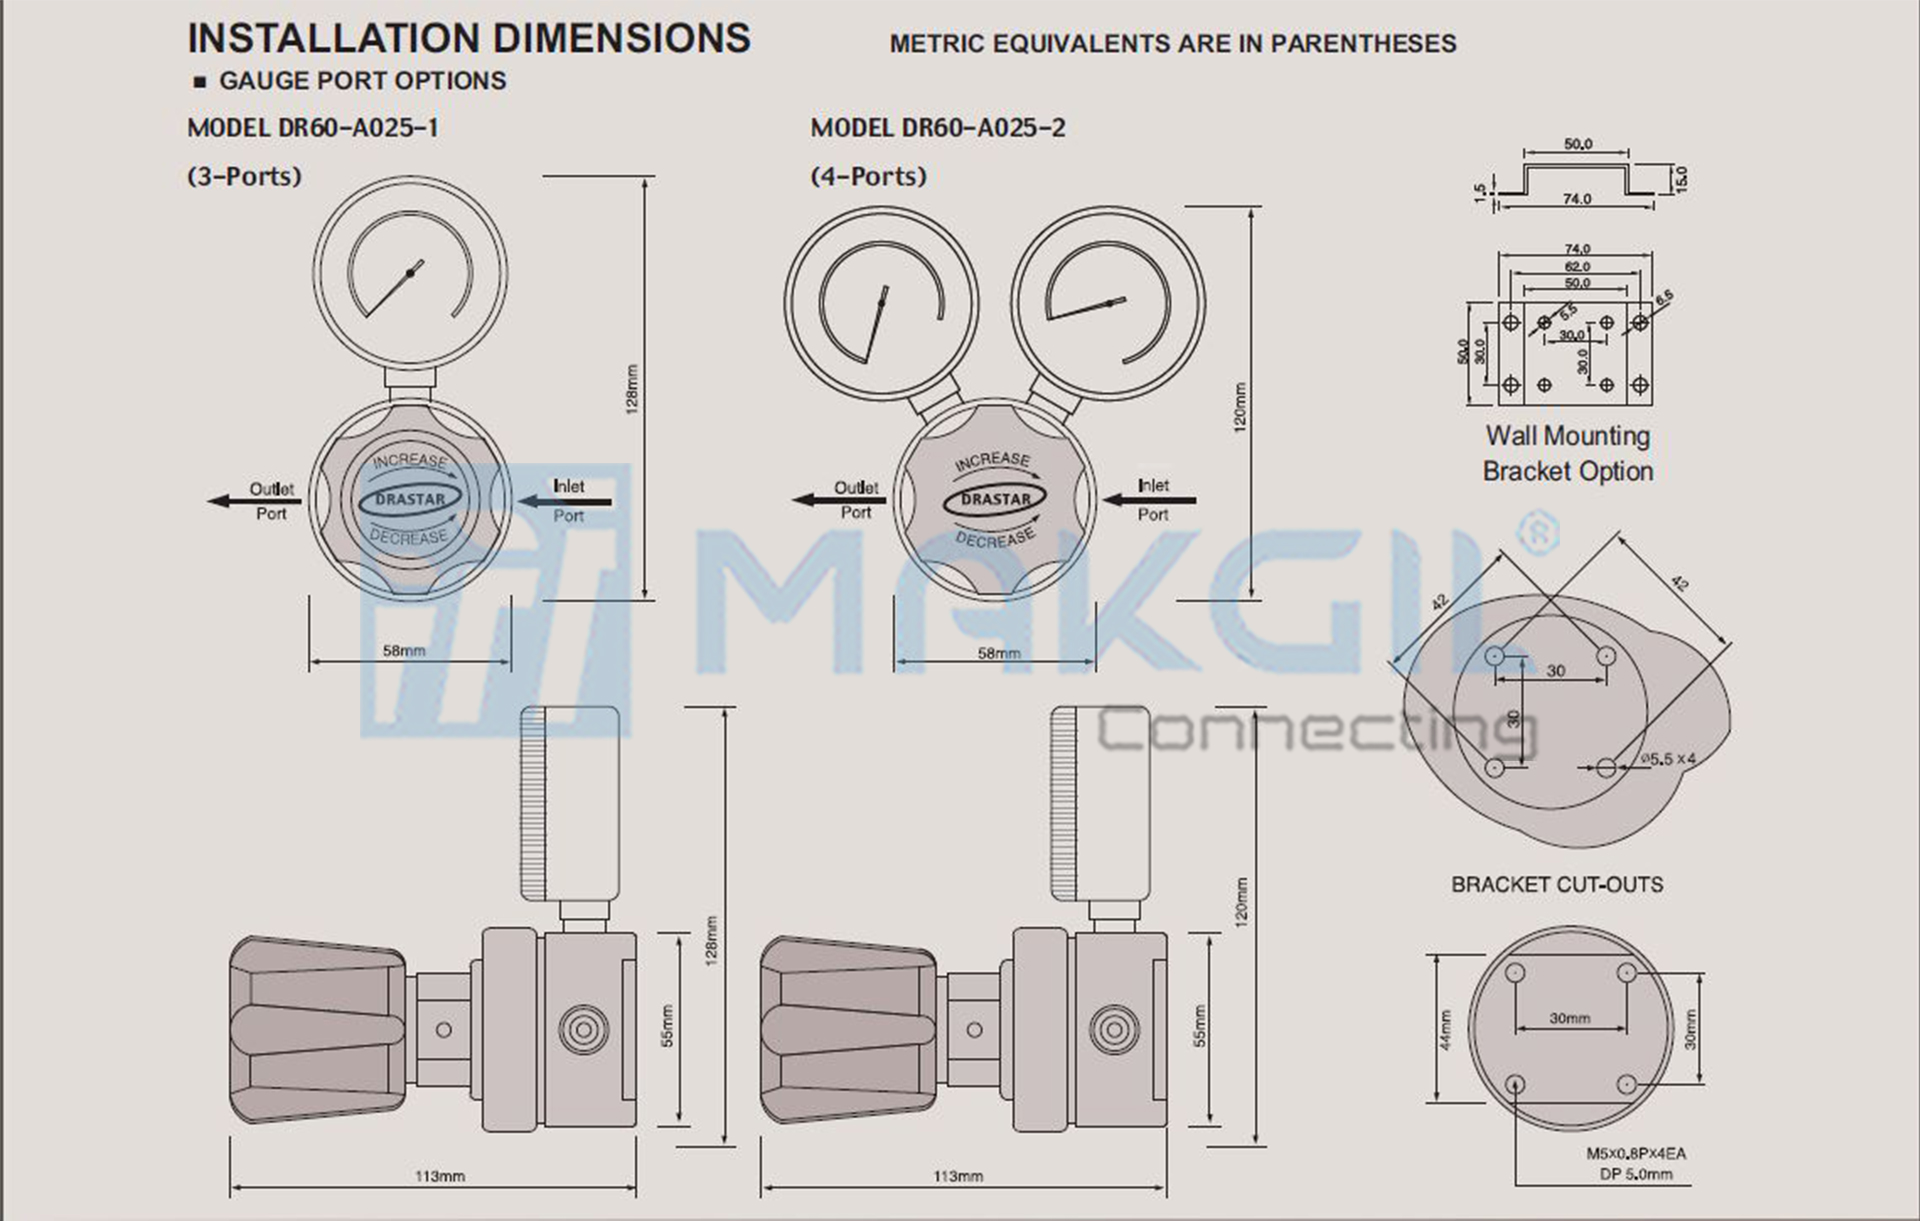 kich_thuoc_lap_dat_bo_dieu_chinh_ap_suat_thap_mot_cap_single_stage_low_pressure_regulators_dr60_series